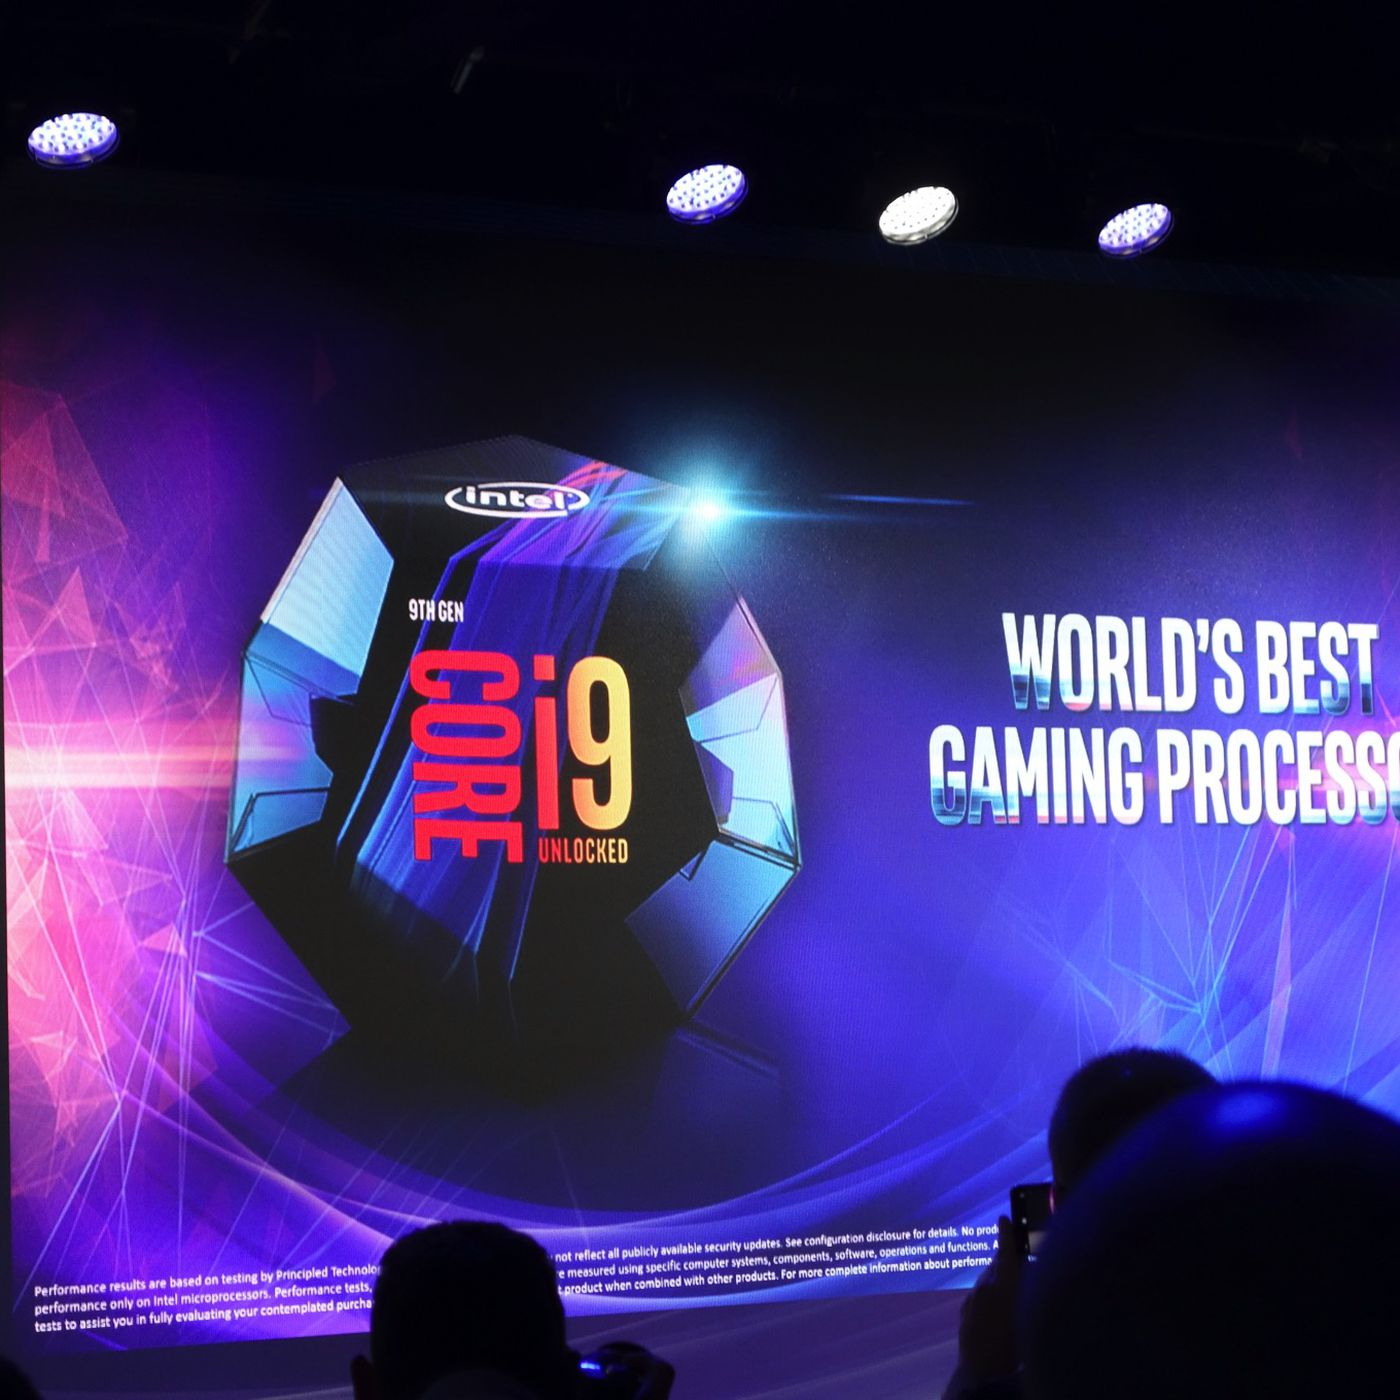 Intel announces its latest 9th Gen chips, including its 'best gaming  processor' Core i9 - The Verge